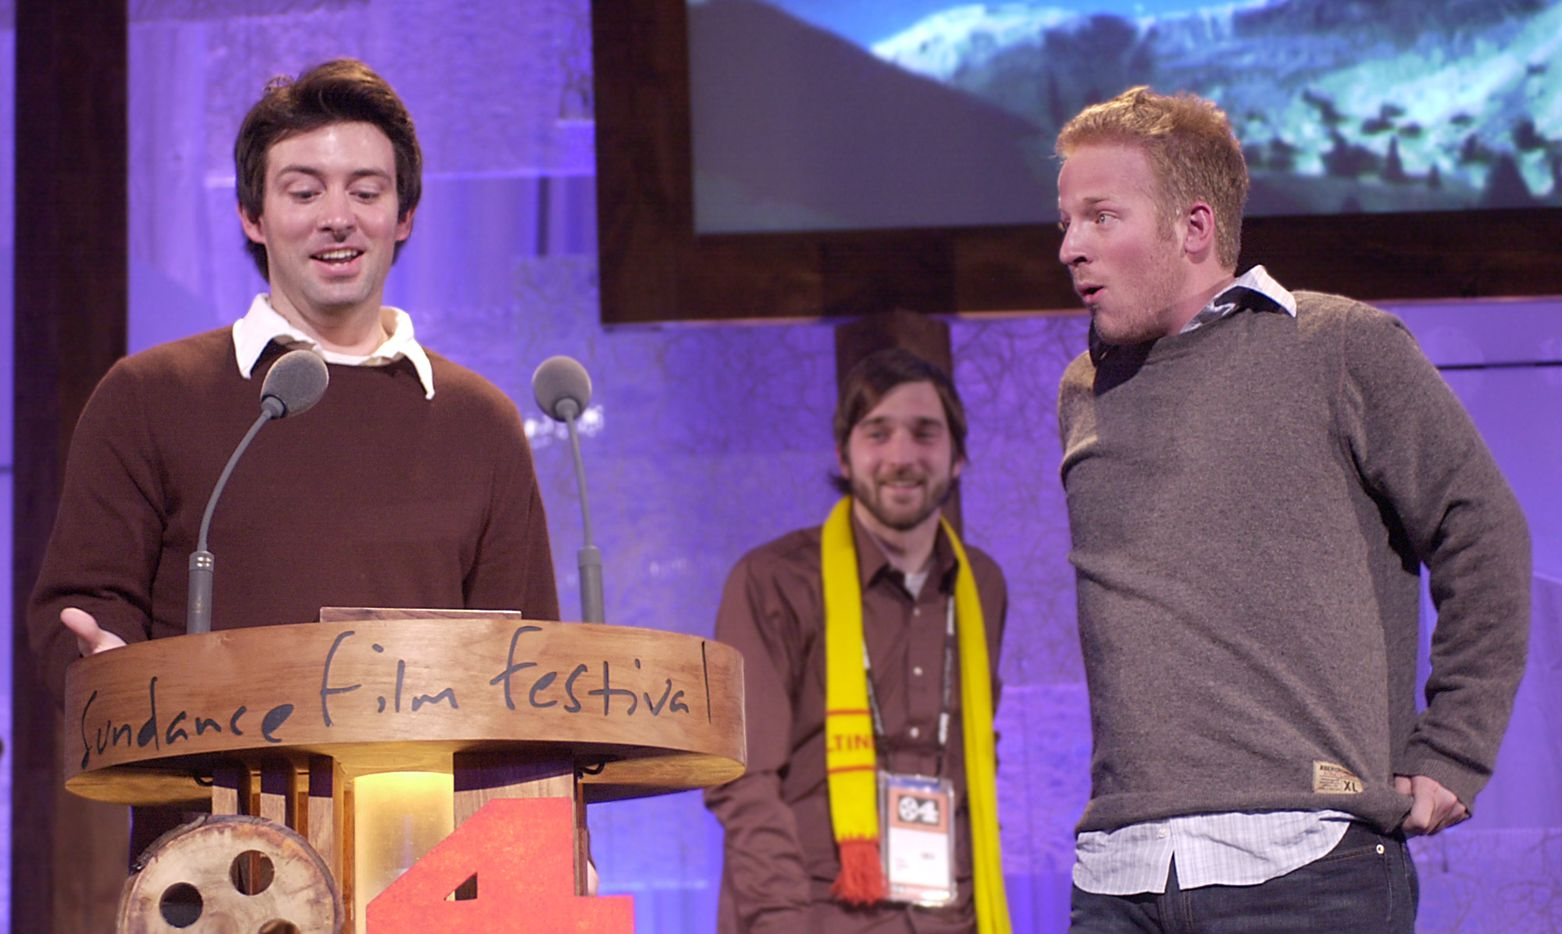 """Shane Carruth accepts the dramatic Grand Jury award for the film """"Primer"""" on Jan. 24, 2004, at the Sundance Film Festival awards show in Park City, Utah. Actors, and crew members Casey Gooden, center, and David Sullivan, right, look on."""